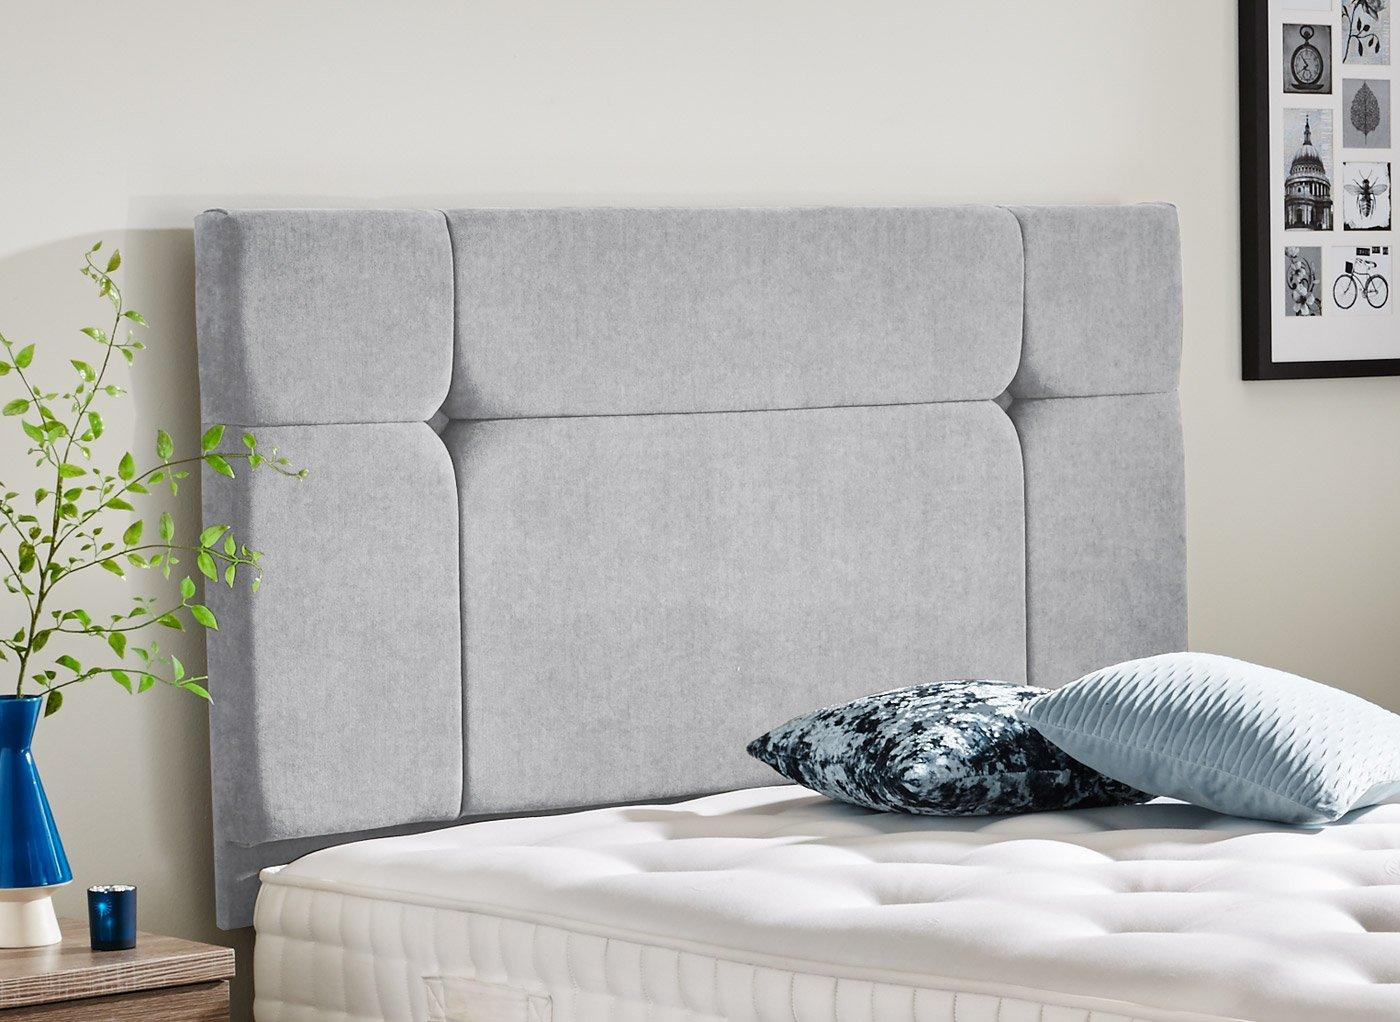 Hebden Headboard 3'0 Single GREY